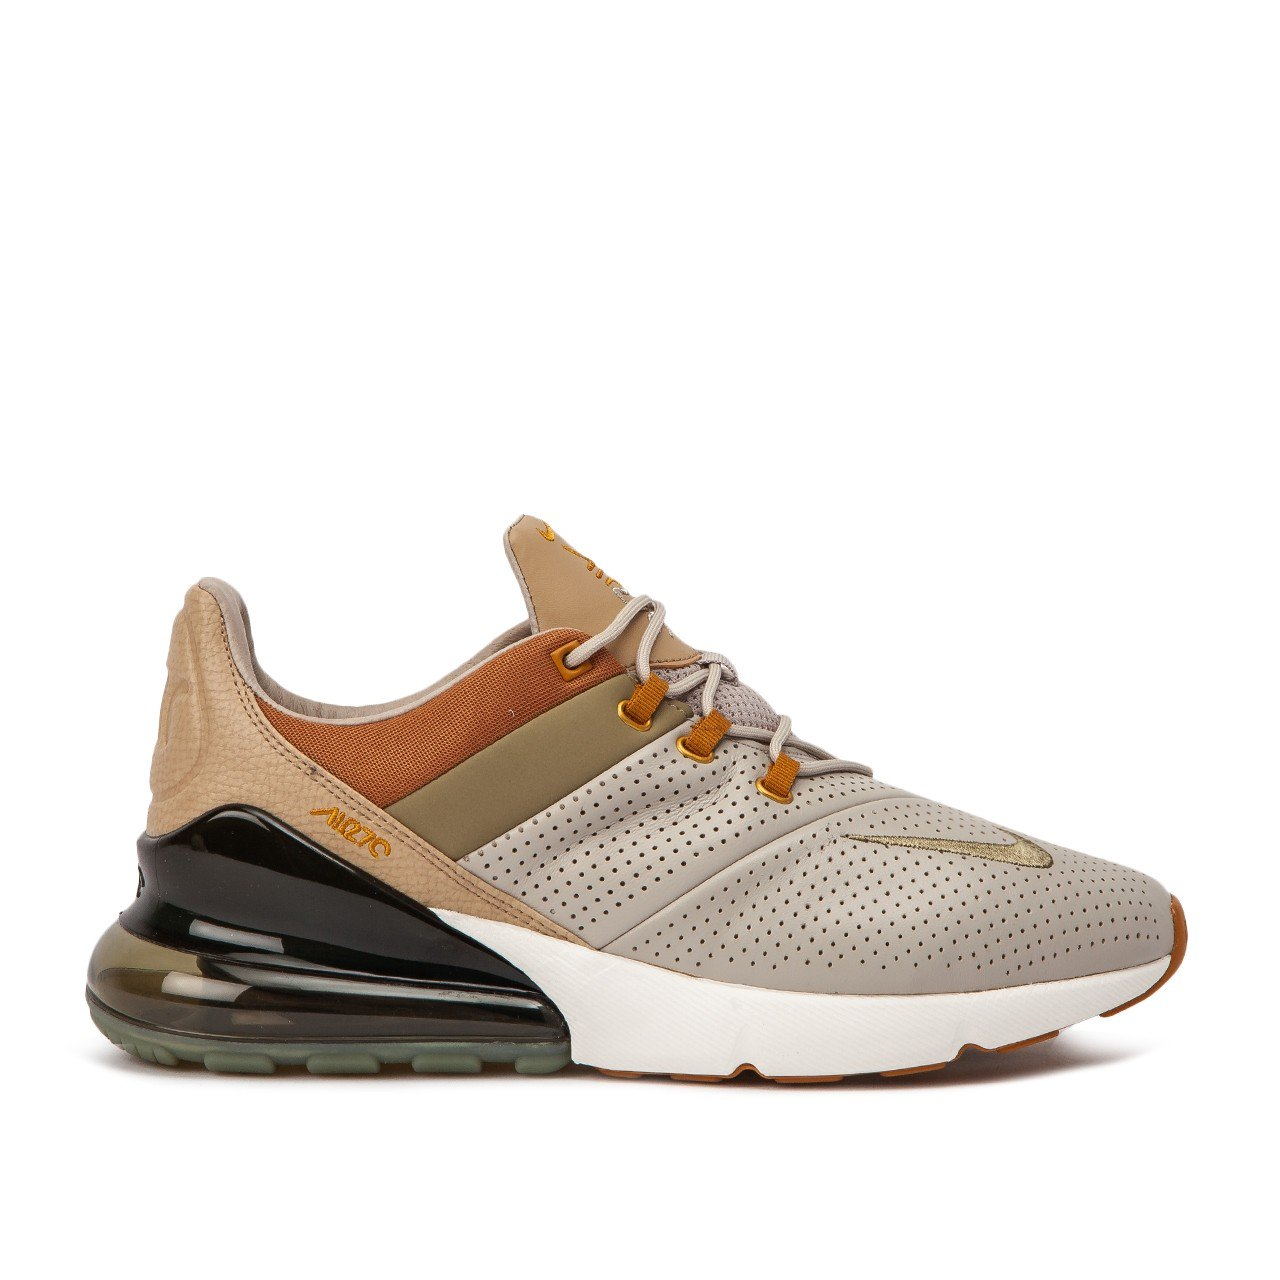 nike-air-max-270-premium-brown-ao8283-200